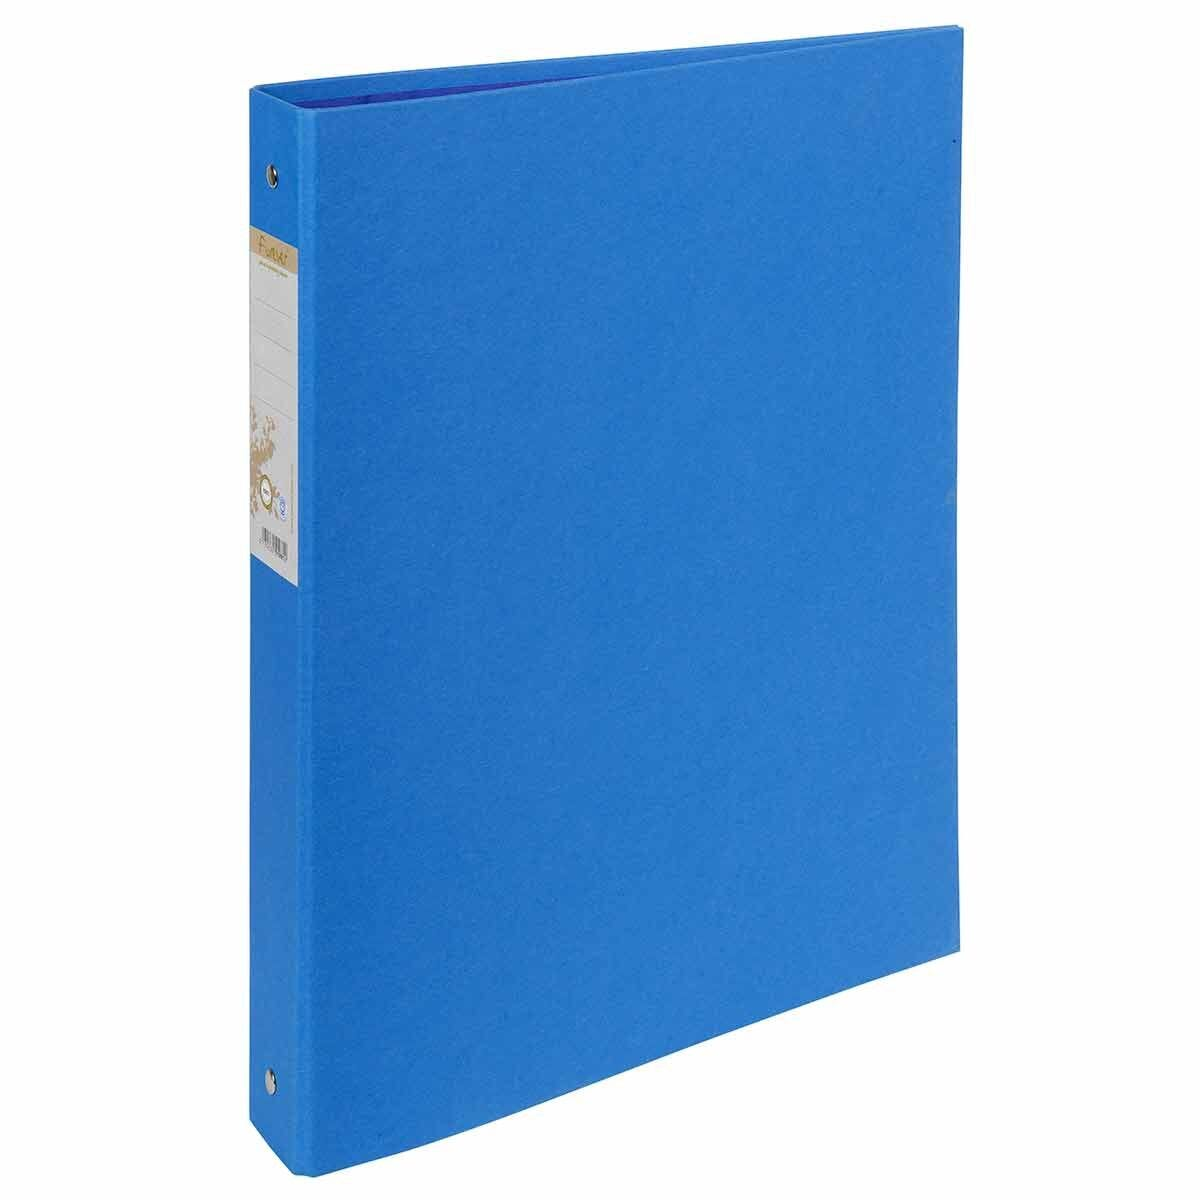 Exacompta Forever Ring Binder 4 Ring 30mm A4 Pack of 10 Light Blue